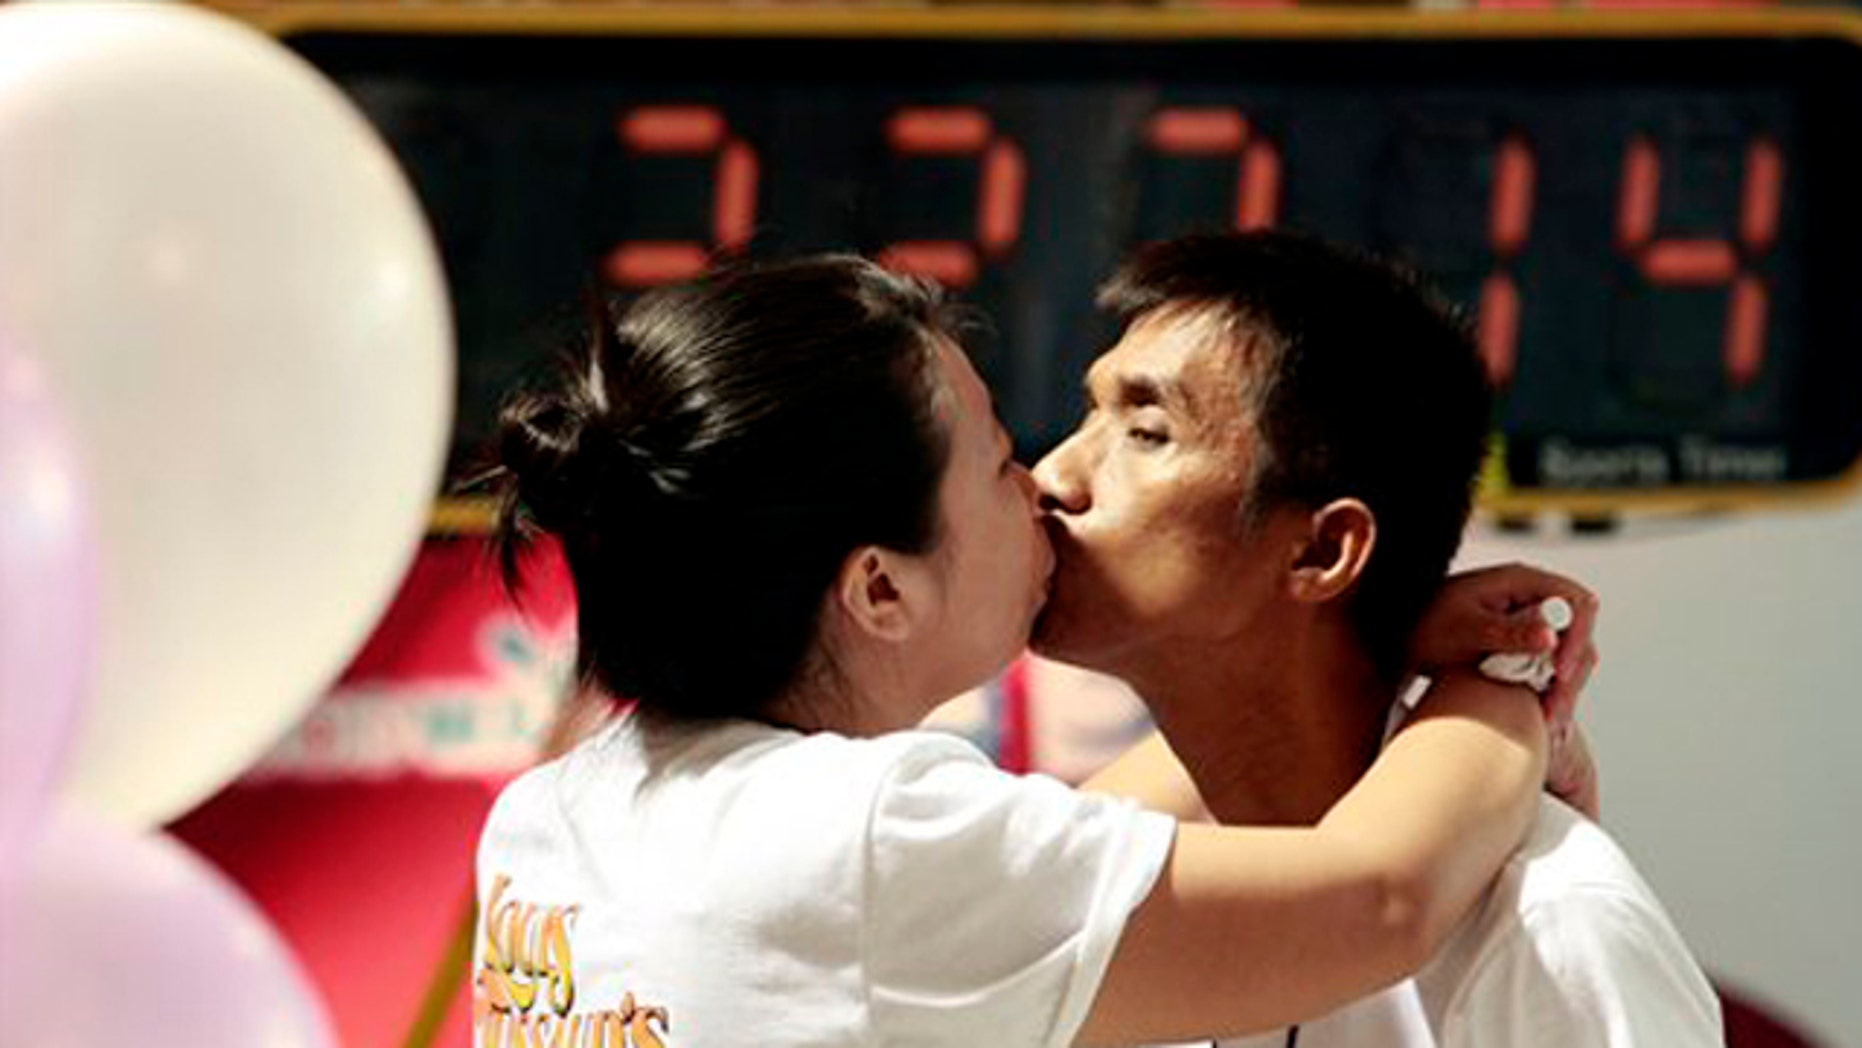 Feb. 13: Competitors, Laksana Tinarat, left, kisses her husband Ekachai during a World's Longest Continuous Kiss competition in Pattaya, southeastern Thailand. The event was held in an attempt to break the Guinness world record and to celebrate St. Valentine's Day. (AP)